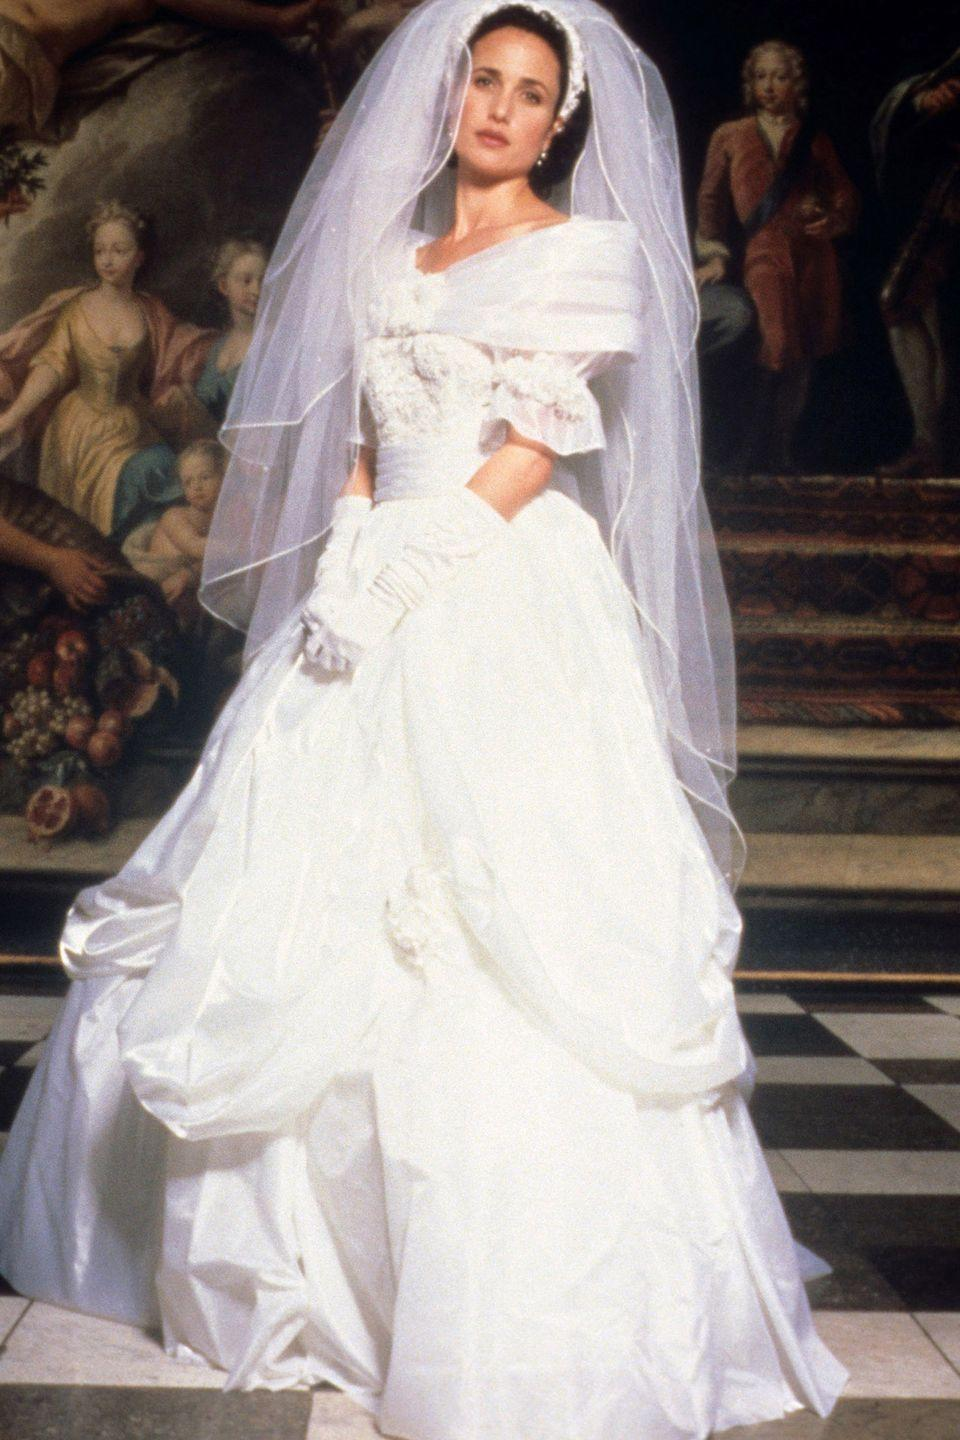 <p>In one of the four weddings that took place in <em>Four Weddings and a Funeral</em><em>,</em> Carrie (Andie MacDowell) wore an off-the-shoulder, A-line ball gown with a draped skirt.<br></p>